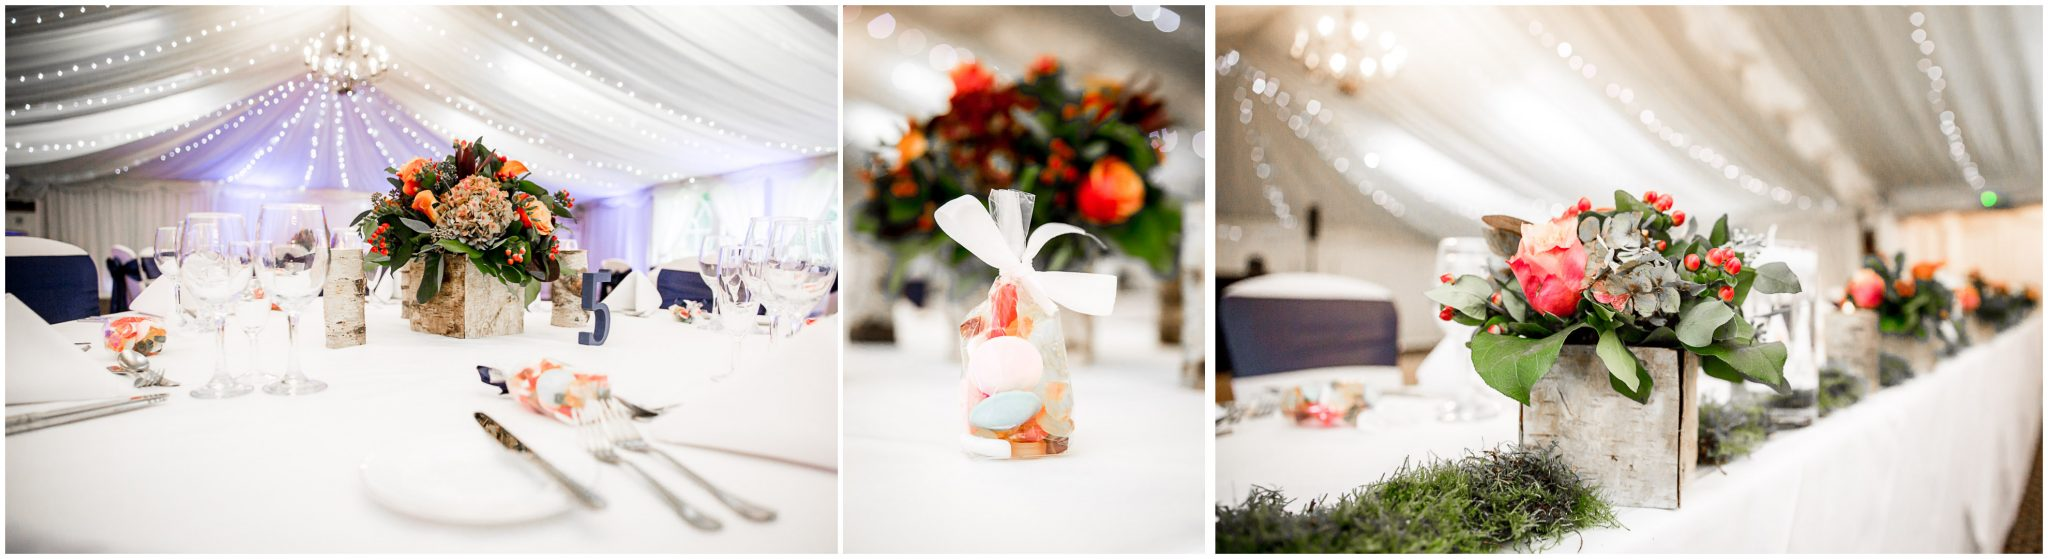 Audleys Wood wedding photograhy floral details in marquee